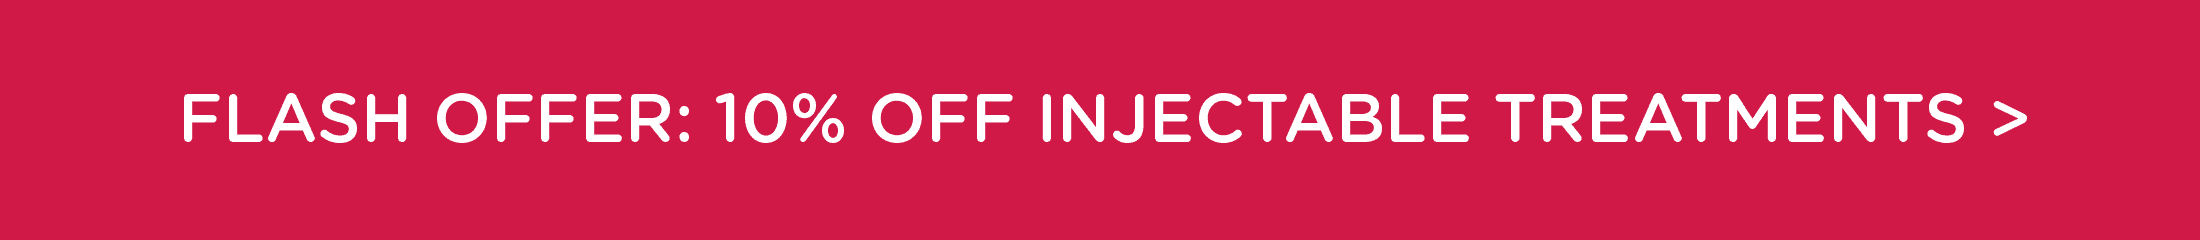 Flash Offer: 10% off Injectable Treatments in June